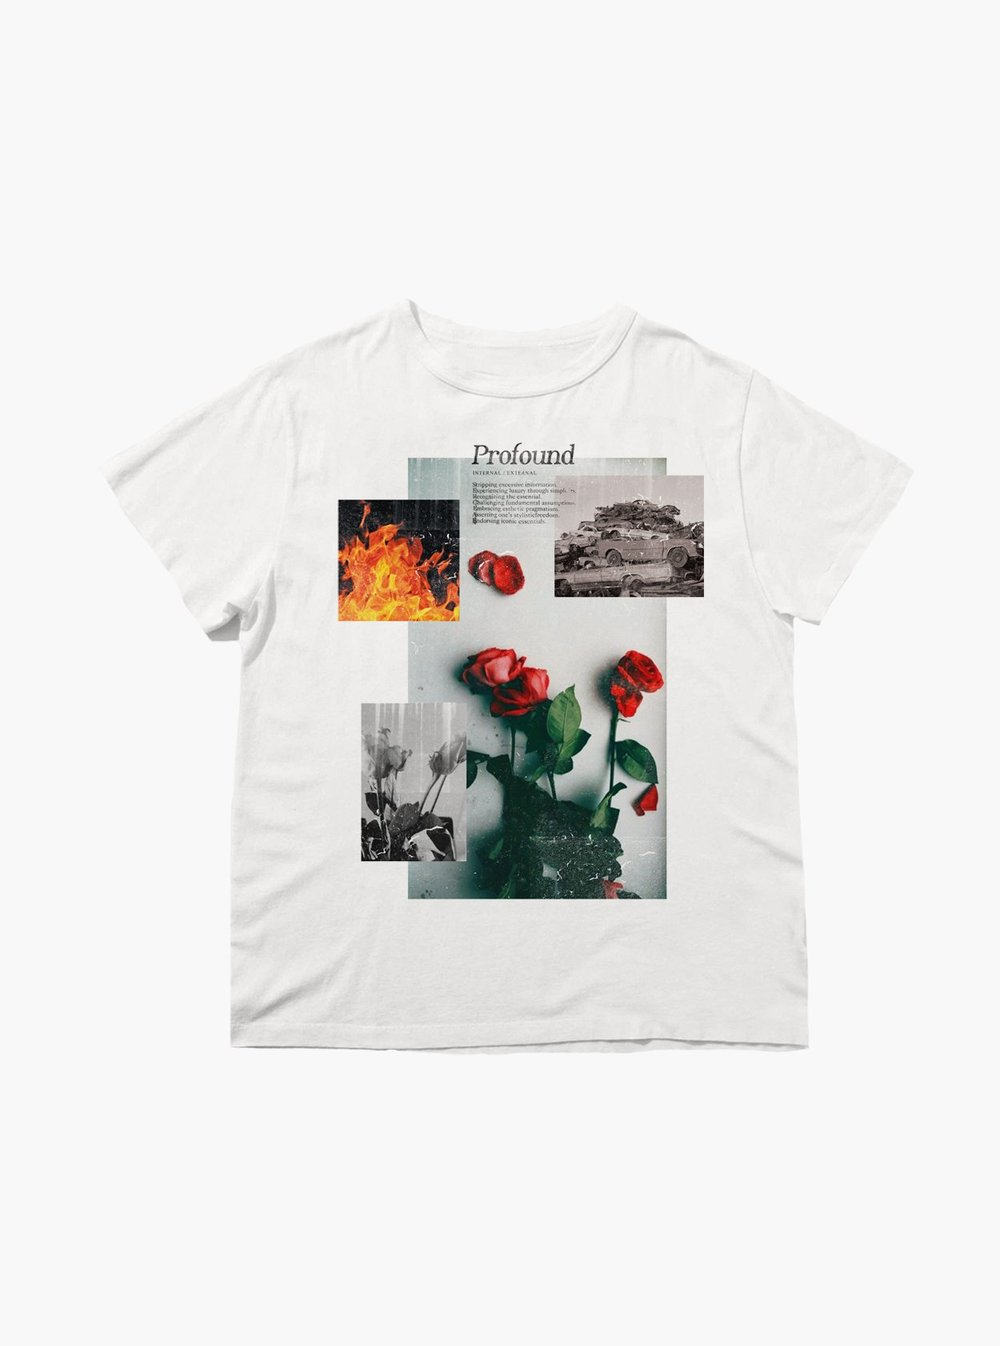 1. Baptized by Fire Tee - Brand: Profound AestheticPrice: $46.00